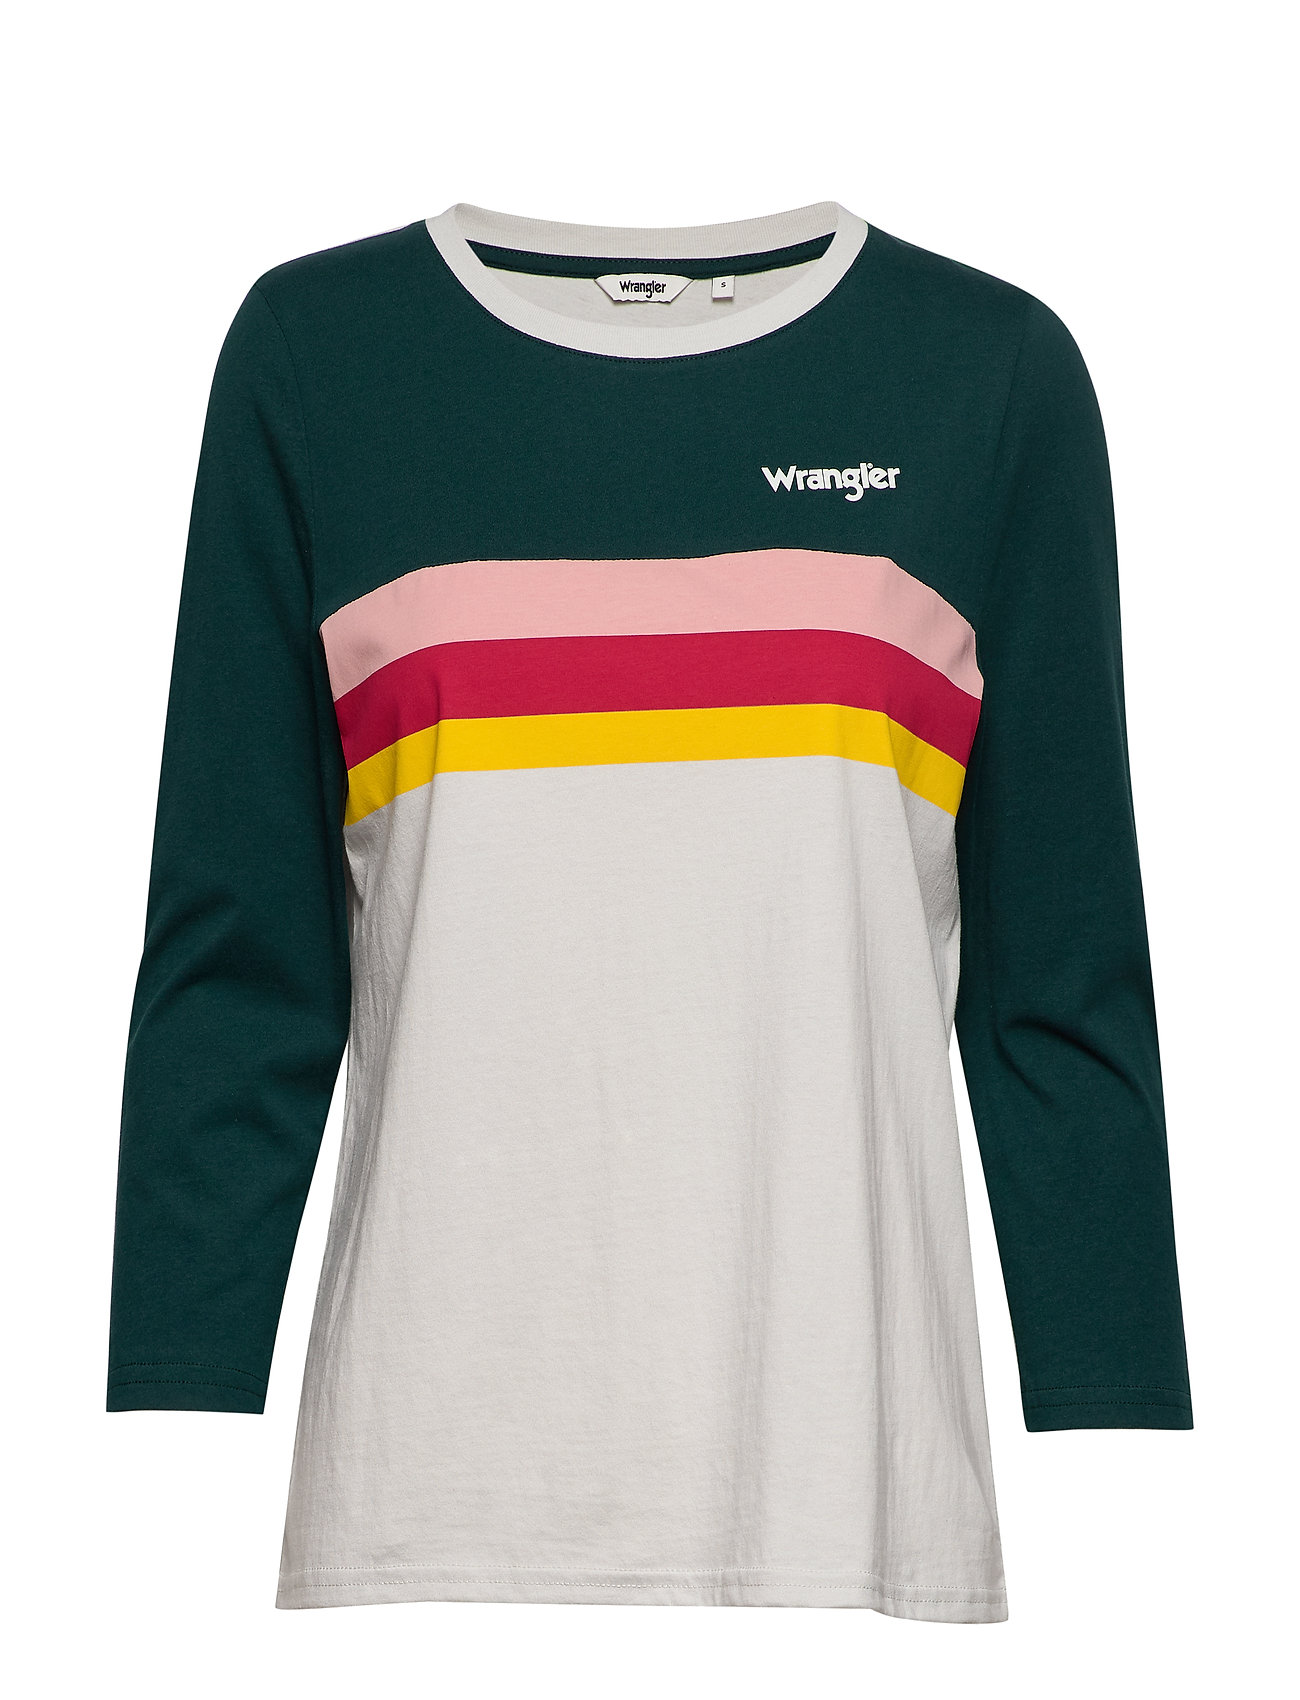 Wrangler RAINBOW TEE - CLOUD BLUE